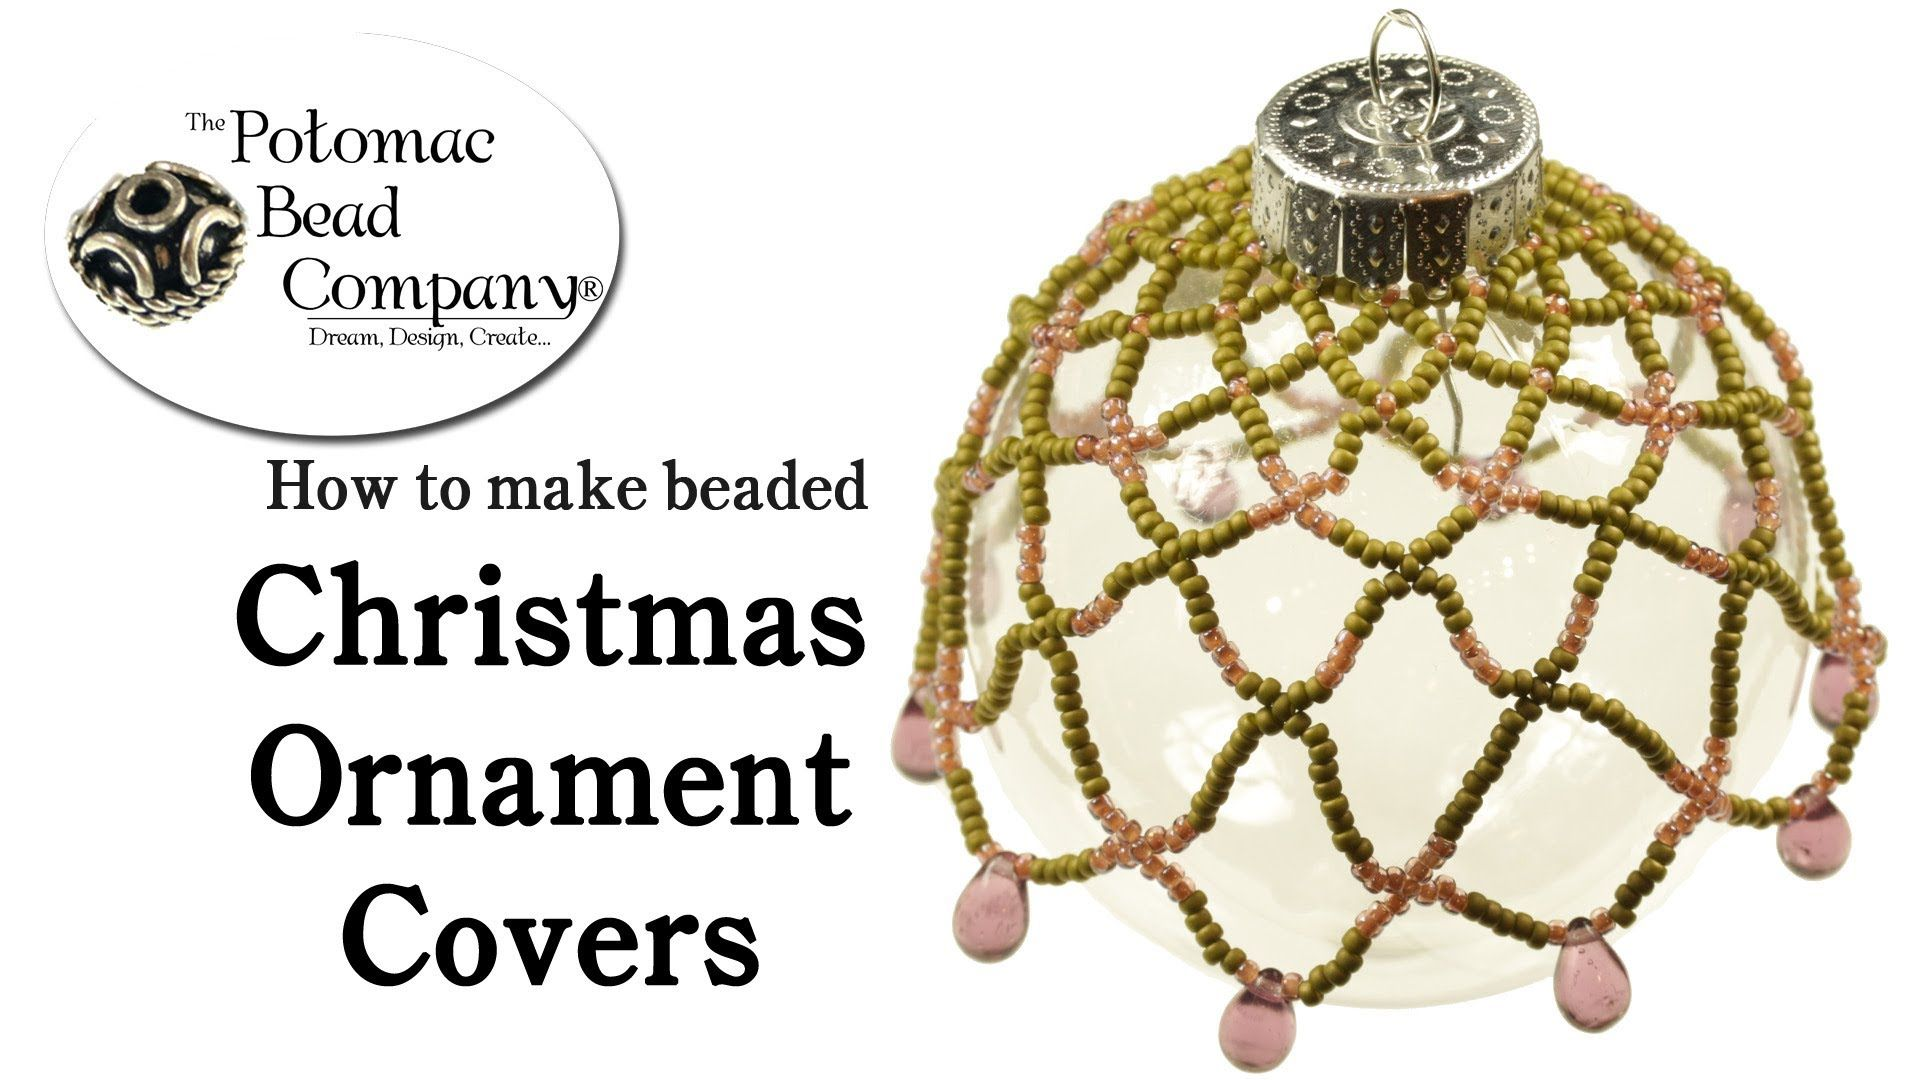 How To Make A Beaded Christmas Ornament Cover Beaded Christmas Ornaments Christmas Bead Christmas Ornaments